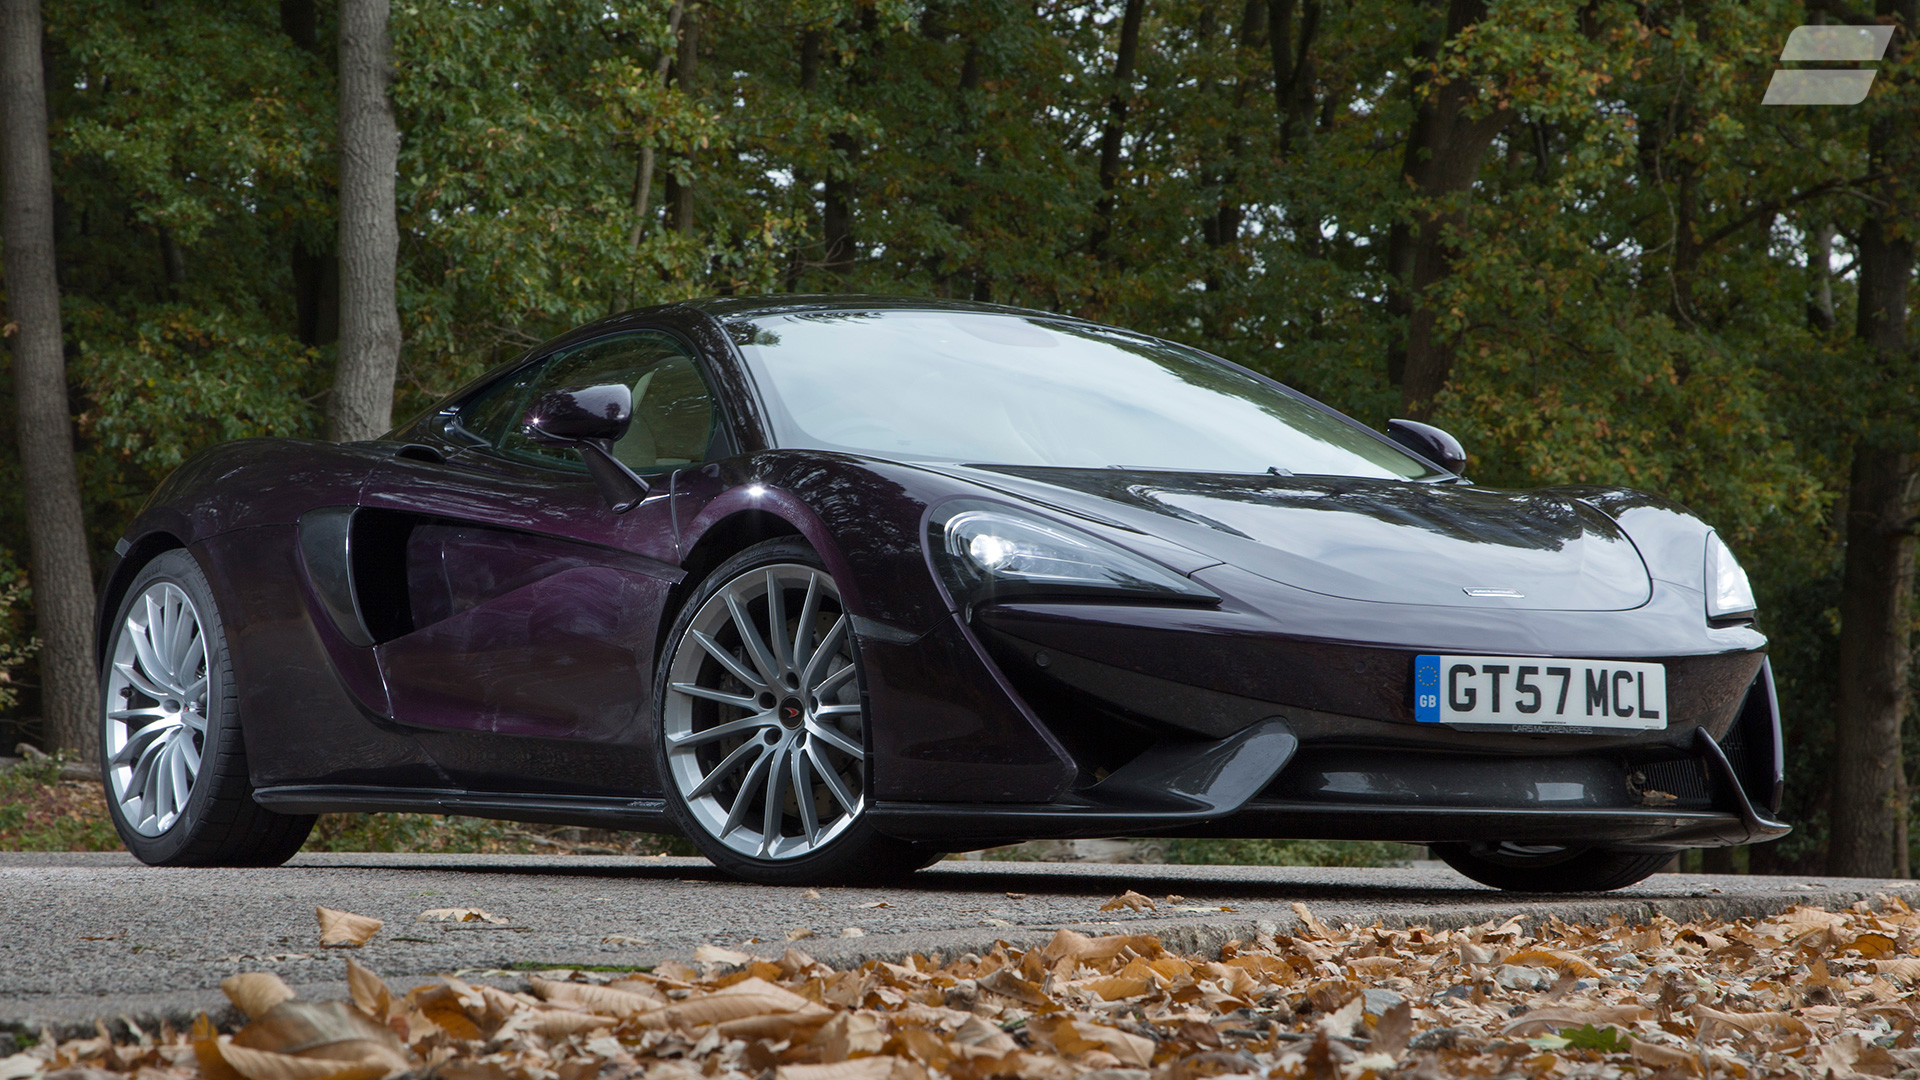 New & used Mclaren 570GT cars for sale   Auto Trader